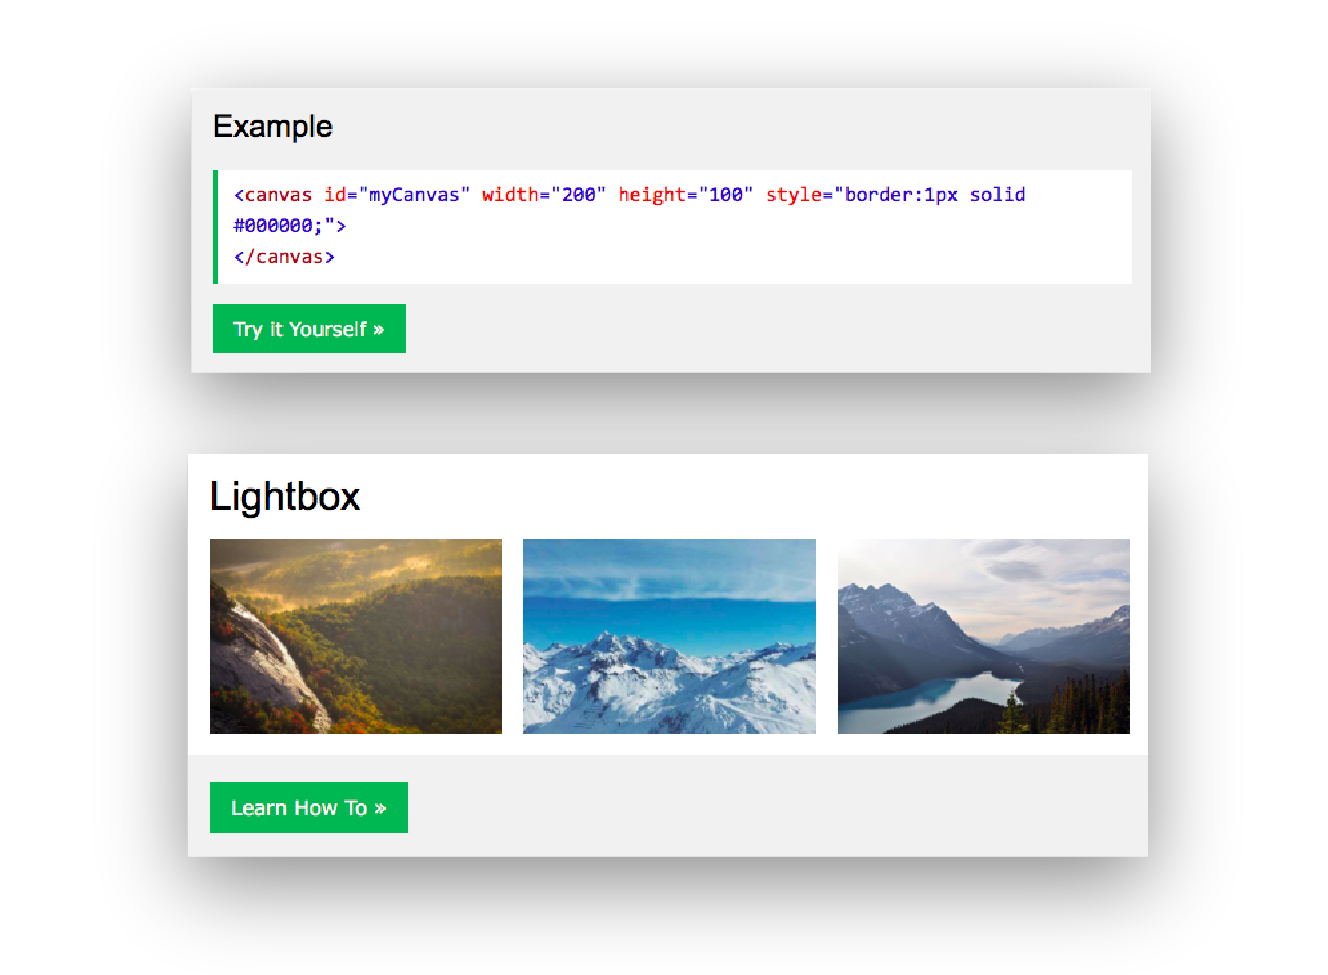 Design Patterns and Task Flows in W3Schools - Prototypr